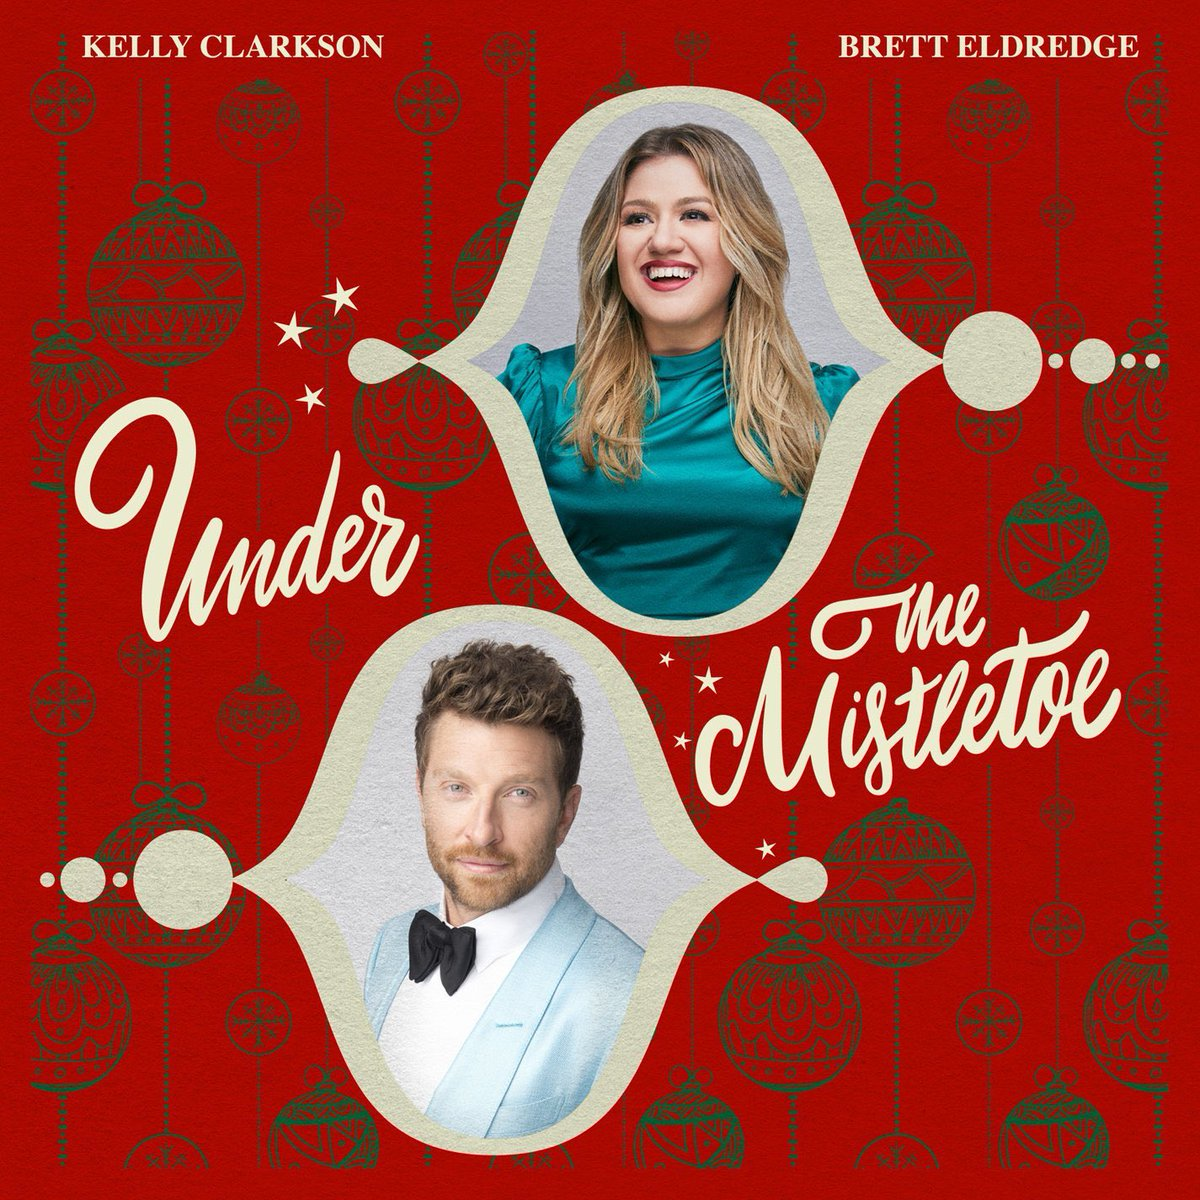 Hey, @MostRequestLive! Play Under The Mistletoe by @kellyclarkson & @BrettEldrege on the next hour possibly, Please?! Thank you. 👩‍🦳🎼📻🙏🏻😉 -Hannah- #MostRequestedLive #KellyOnRomeo #UnderTheMistletoe #TeamKelly